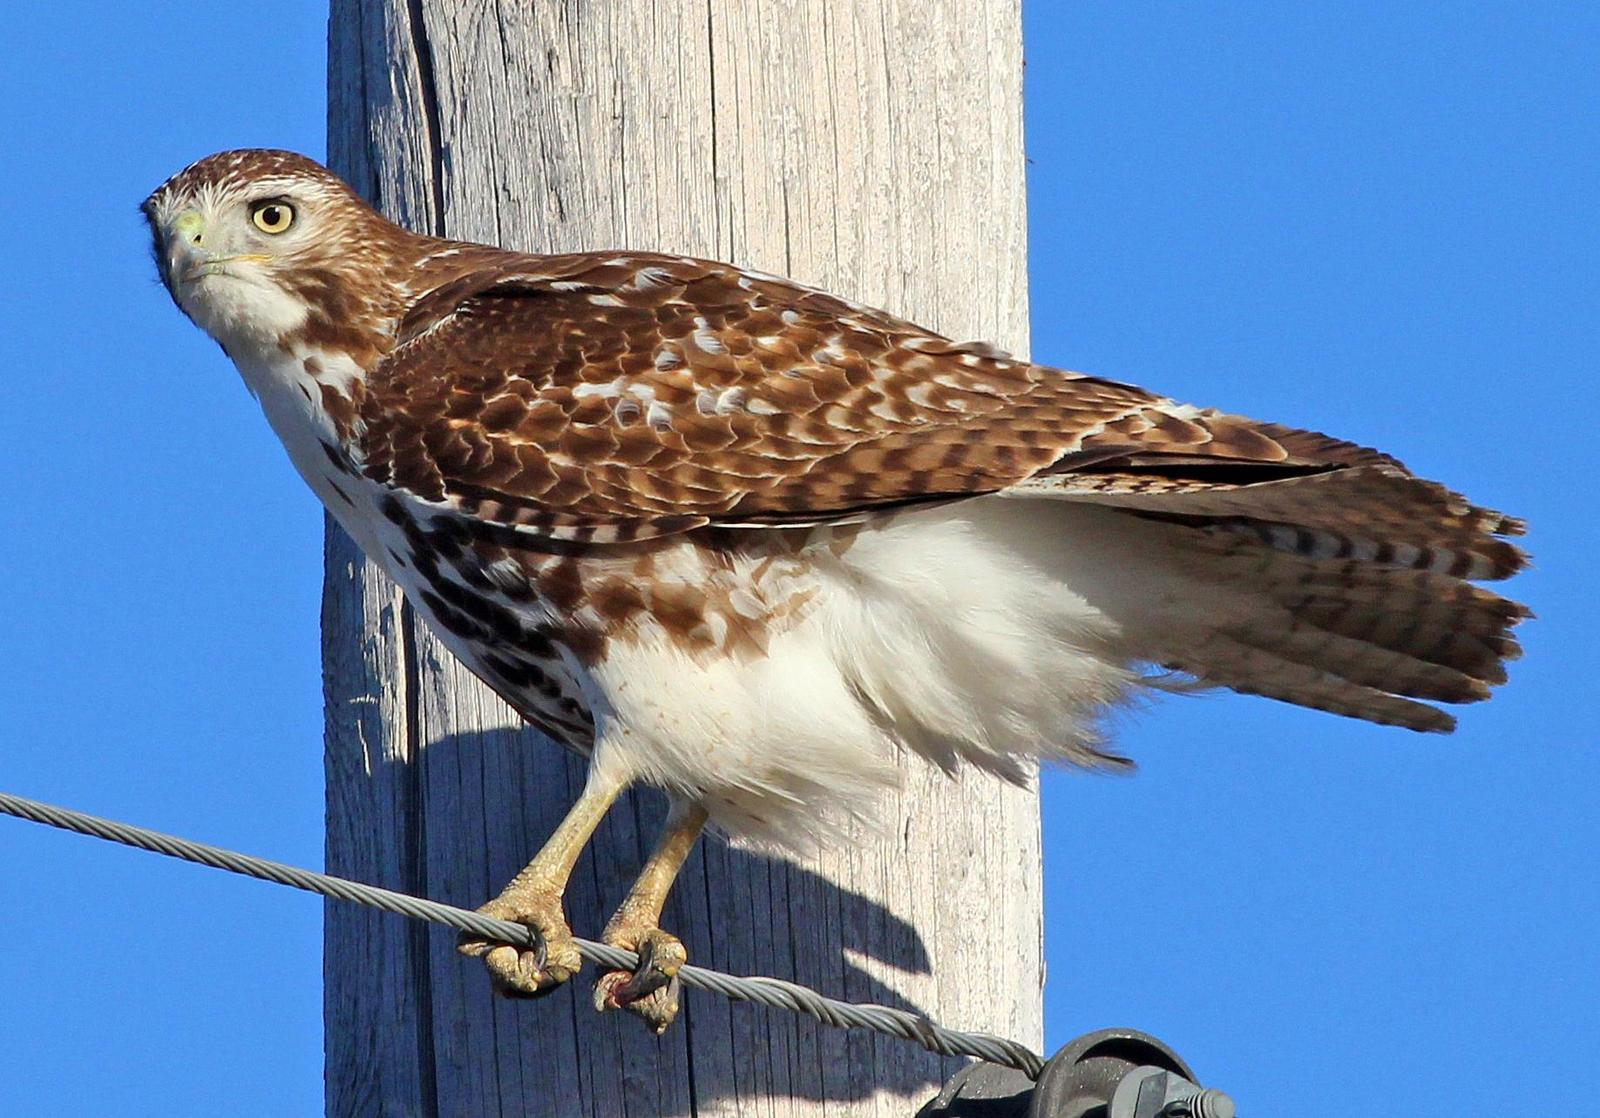 Red-tailed Hawk Photo by Tom Gannon